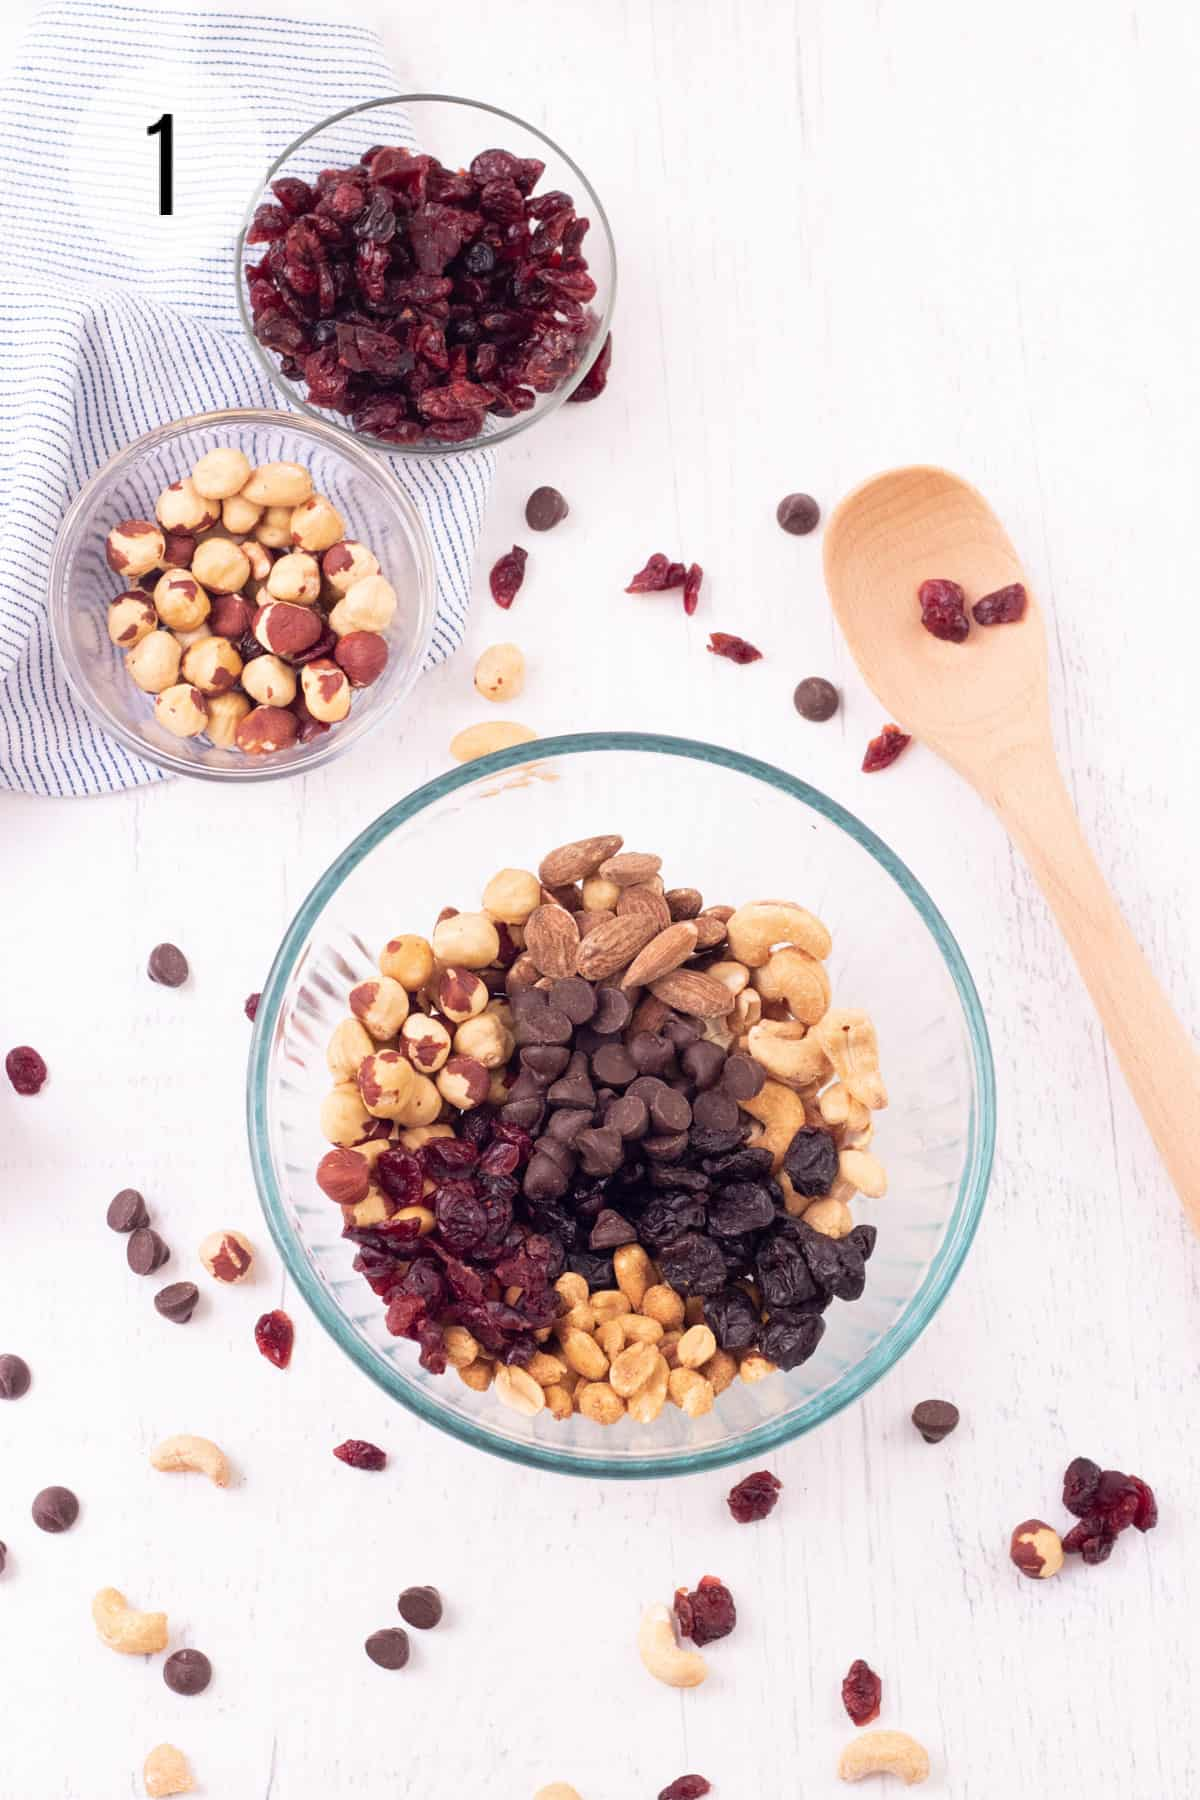 Glass bowl with roasted nuts, dried fruit and chocolate chips and sprinkle of ingredients on background with wooden spoon and smaller bowls of nuts in background.